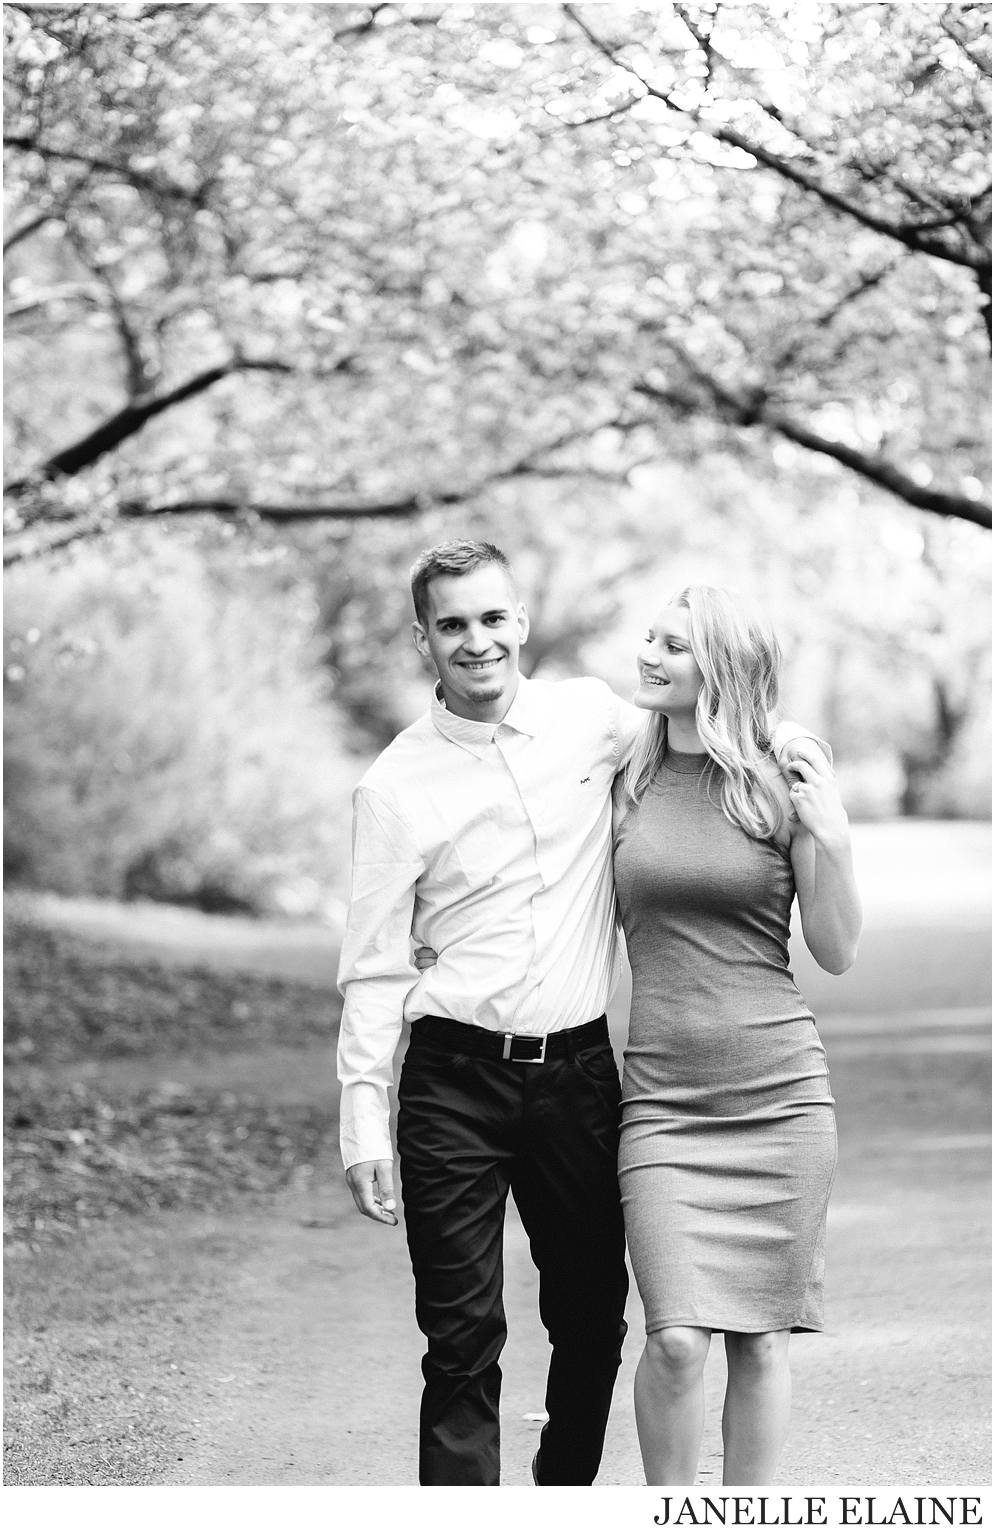 tricia and nate engagement photos-janelle elaine photography-50.jpg